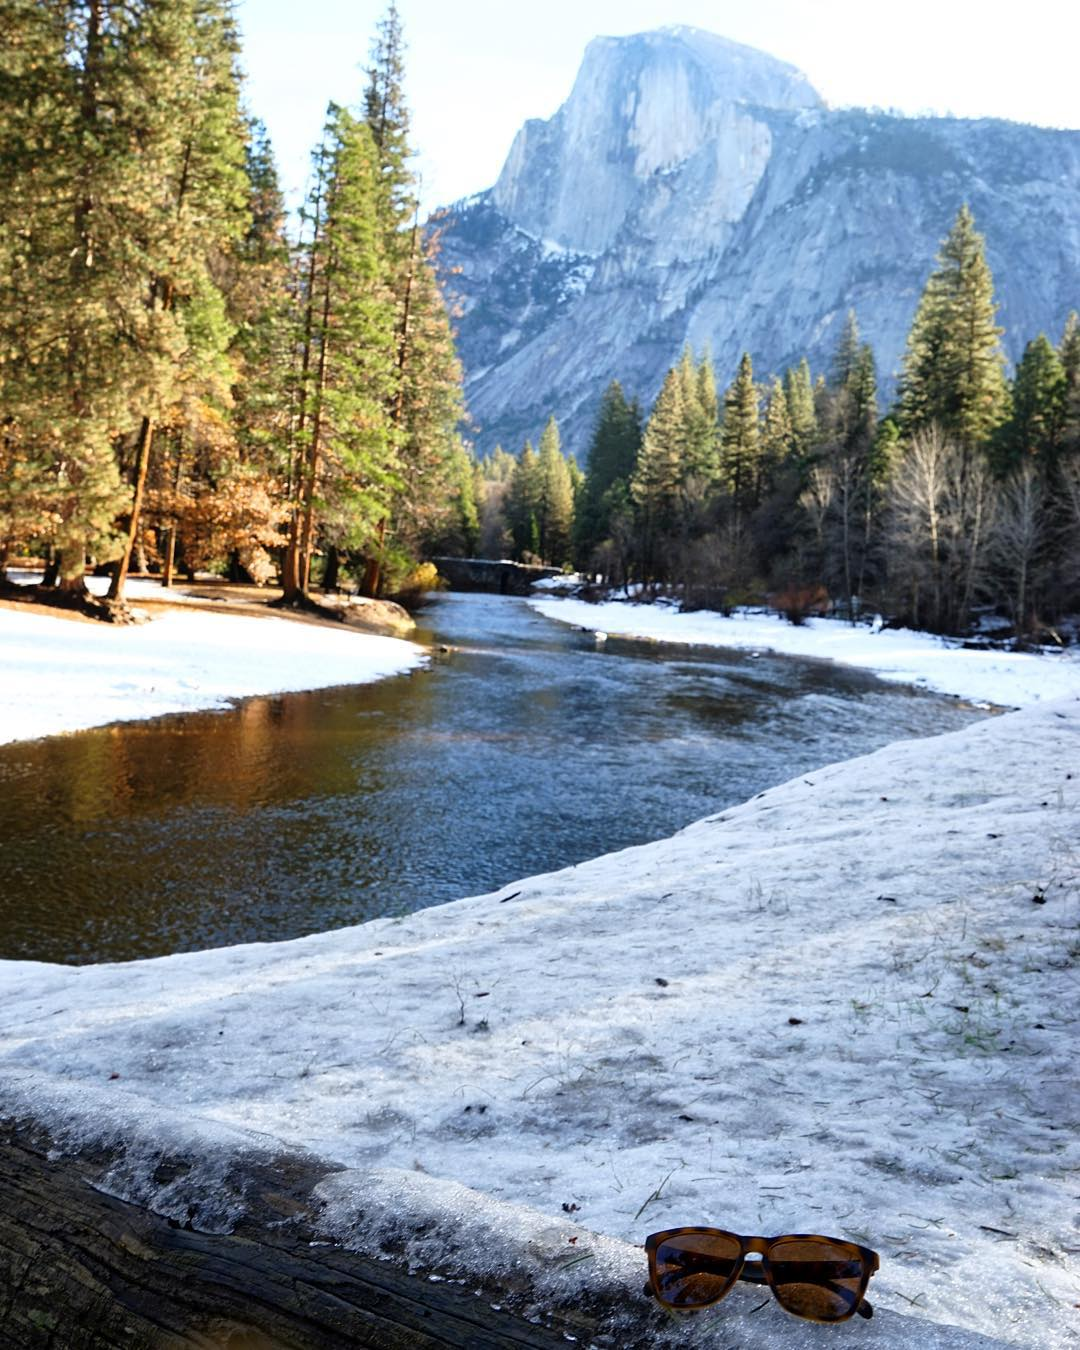 Snowy Yosemite views